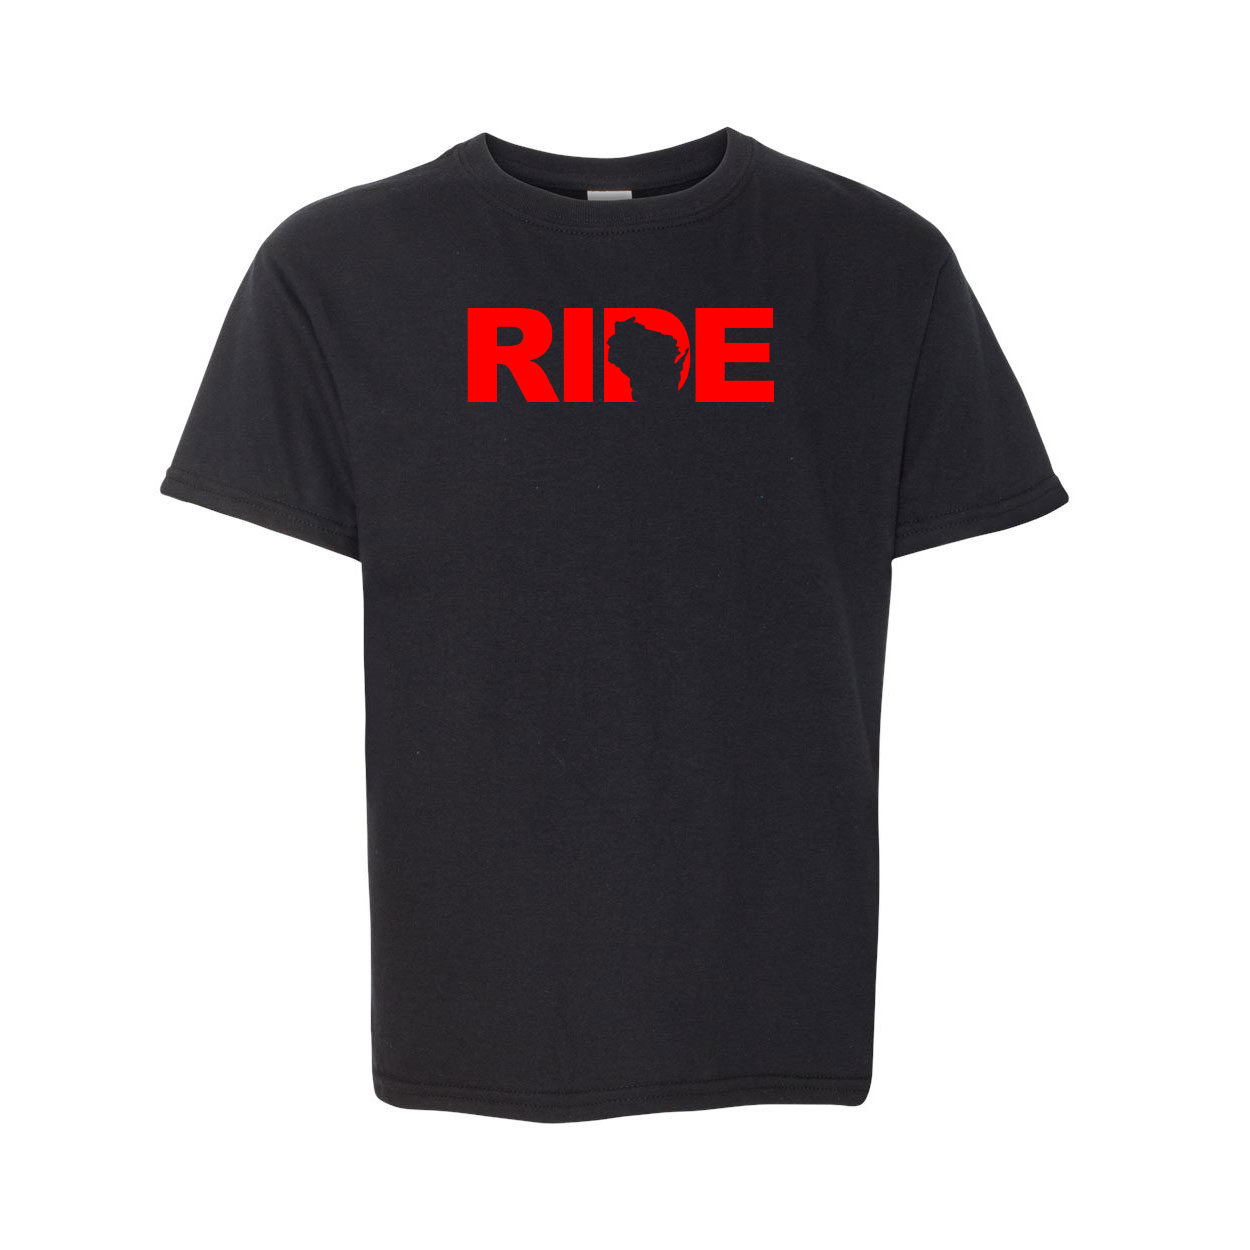 Ride Wisconsin Classic Youth Unisex T-Shirt Black (Red Logo)